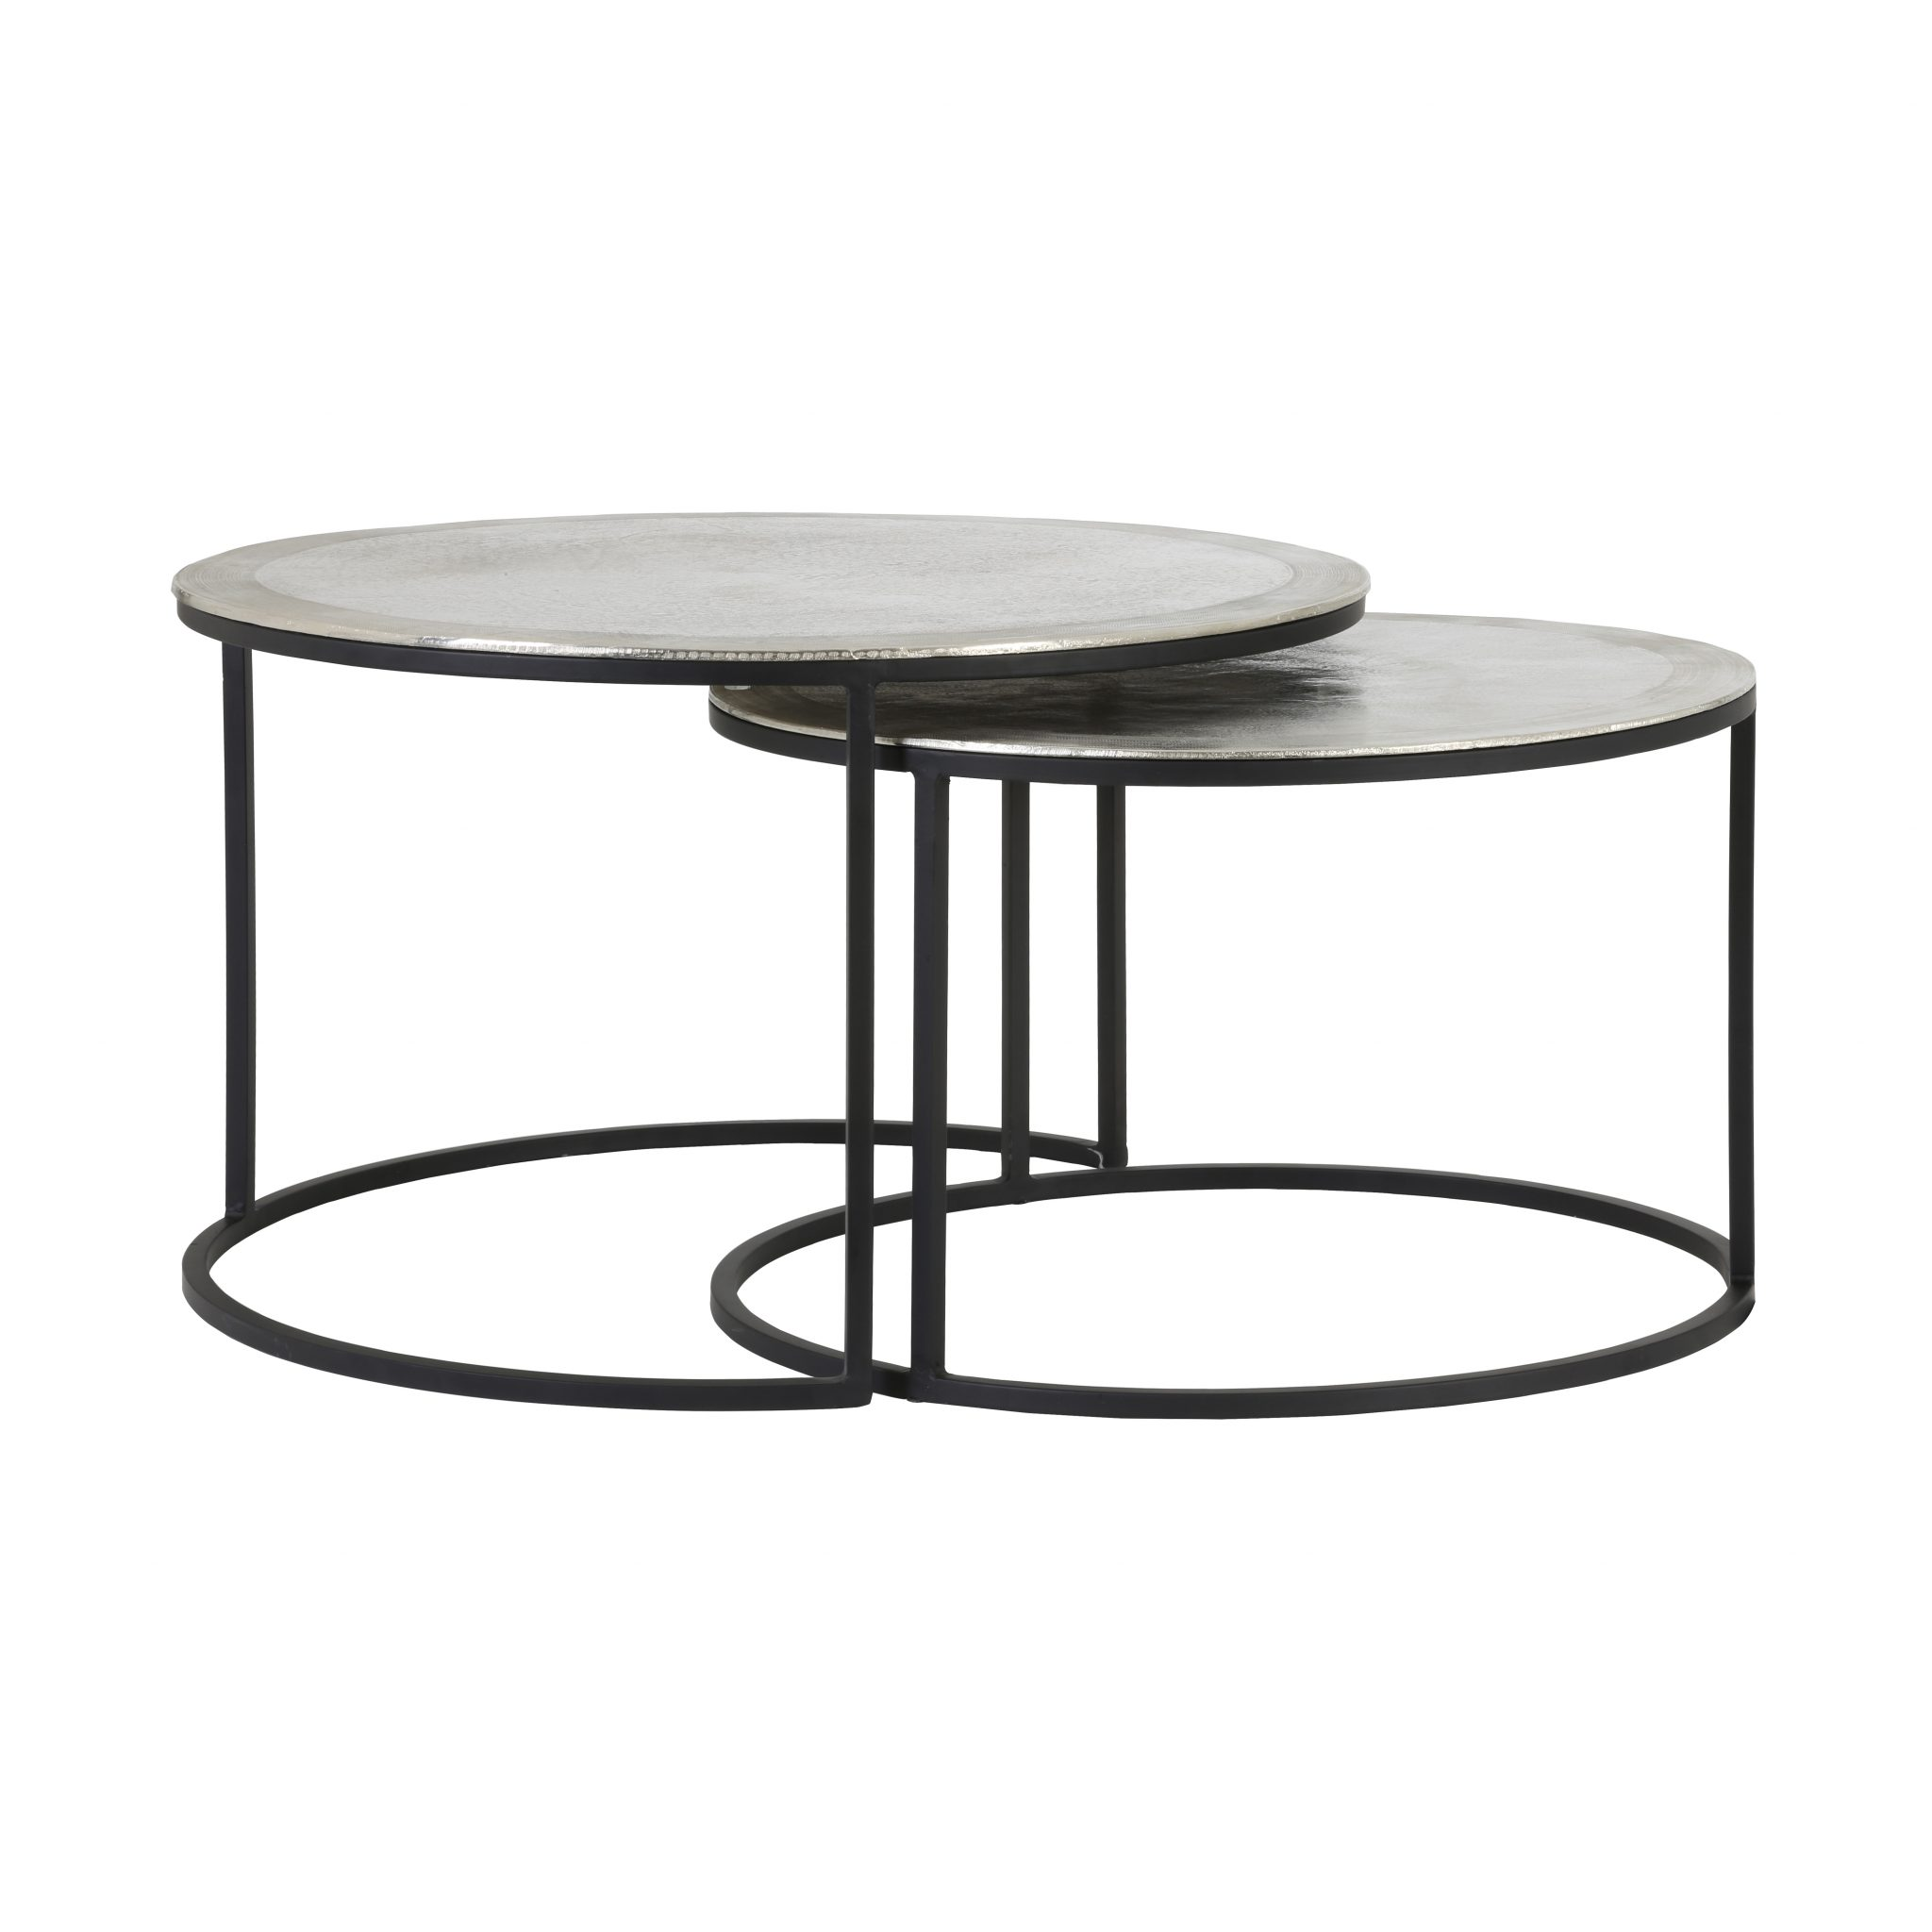 silver coffee table set two aflair for home end tables glass and stone narrow console drawers what colour cushions with brown leather sofa tall black bedside dining base living